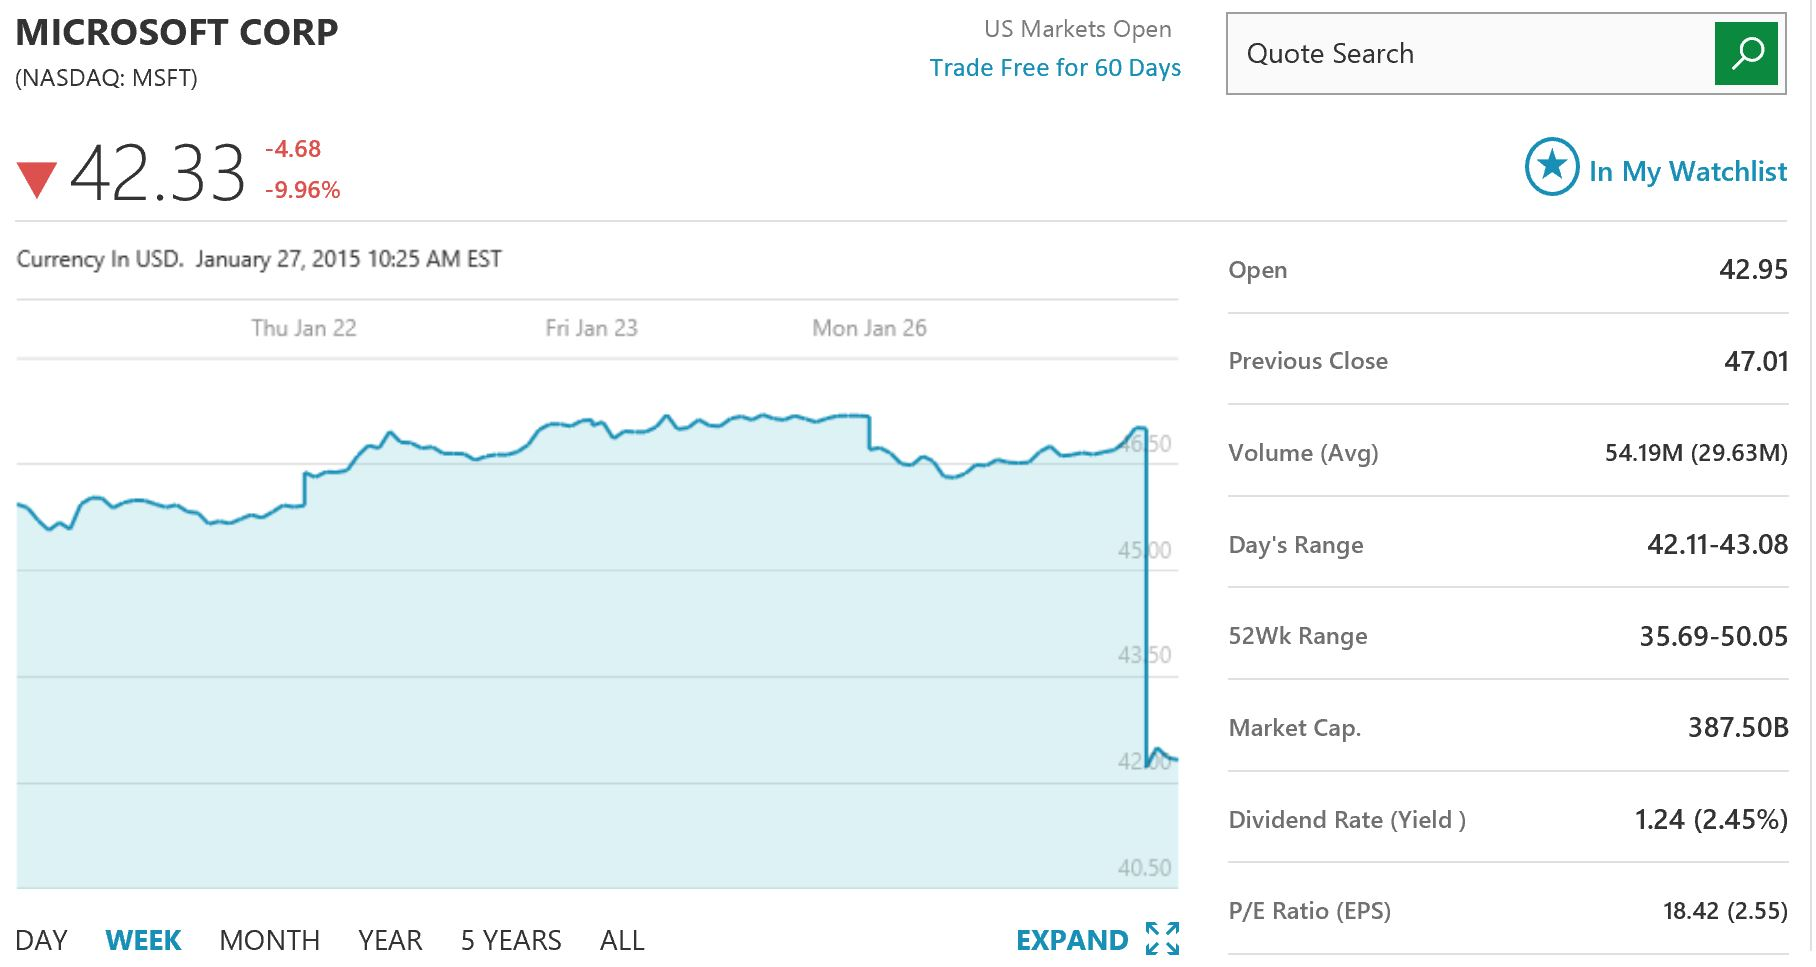 Msft Stock Quote Microsoft Stock Price Down More Than 10% Since Morning Losing $30